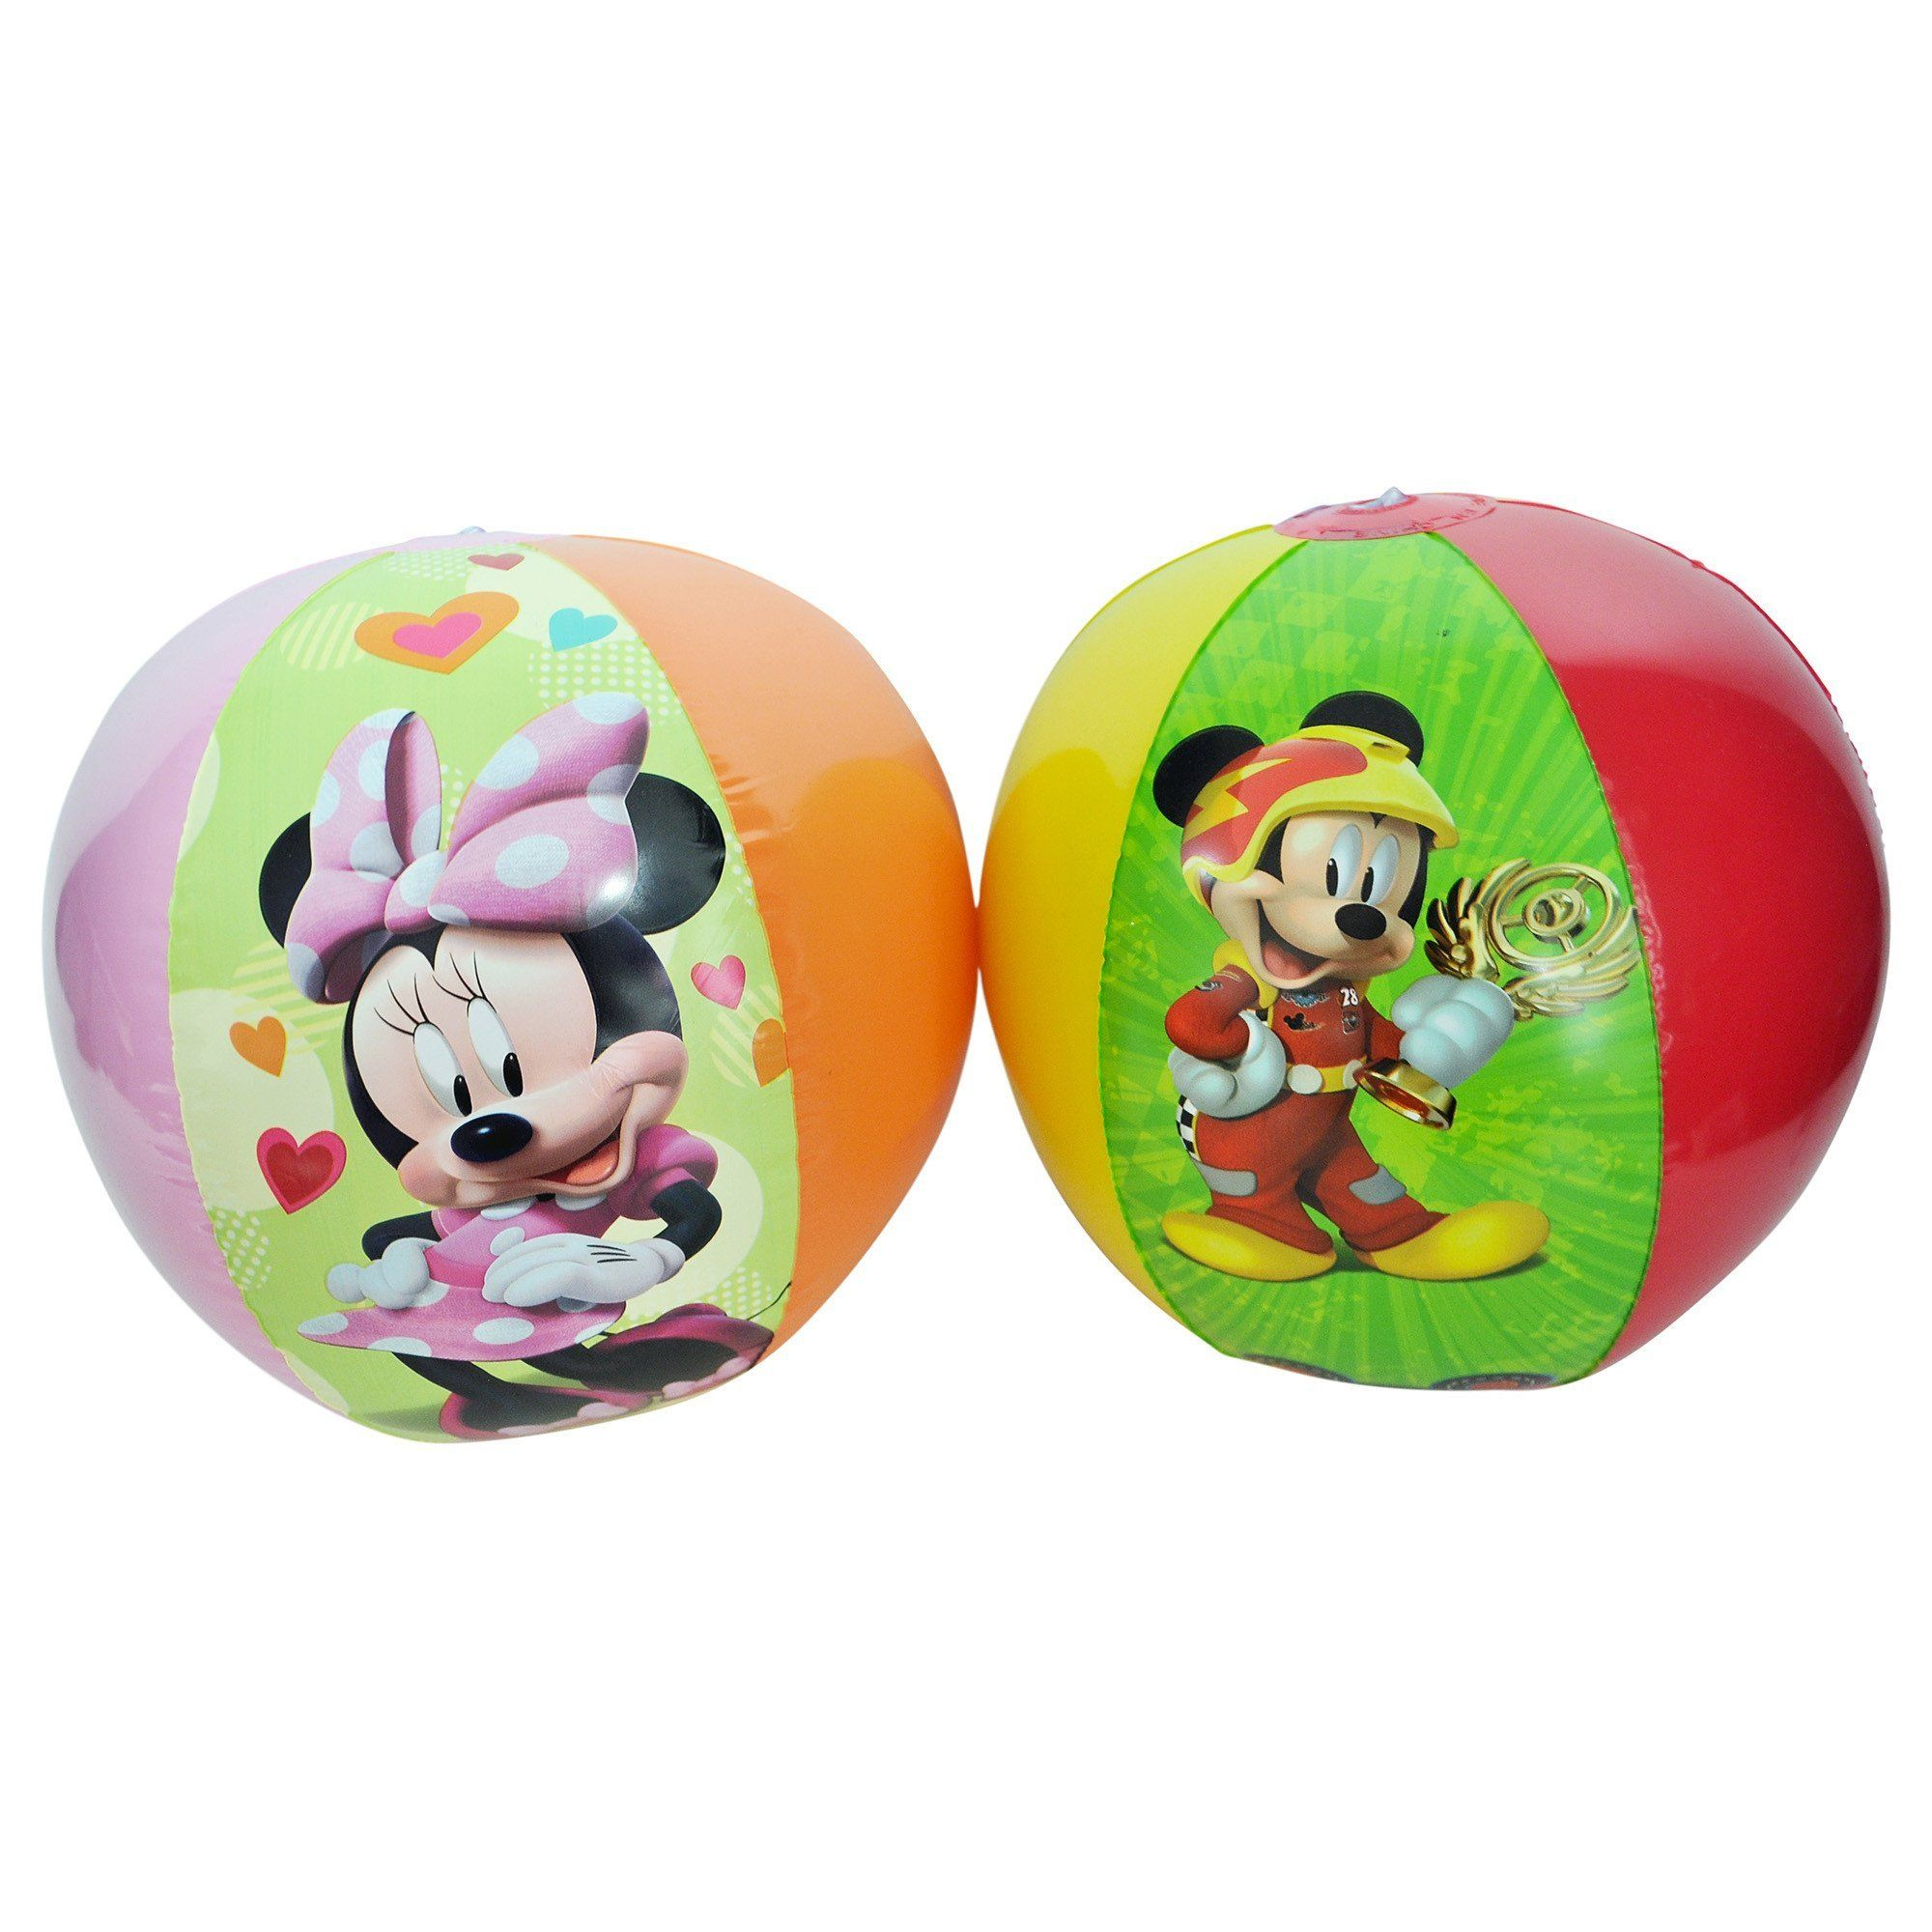 73f6d3571fec Disney Mickey   Minnie Mouse Beach Ball 2 Pack